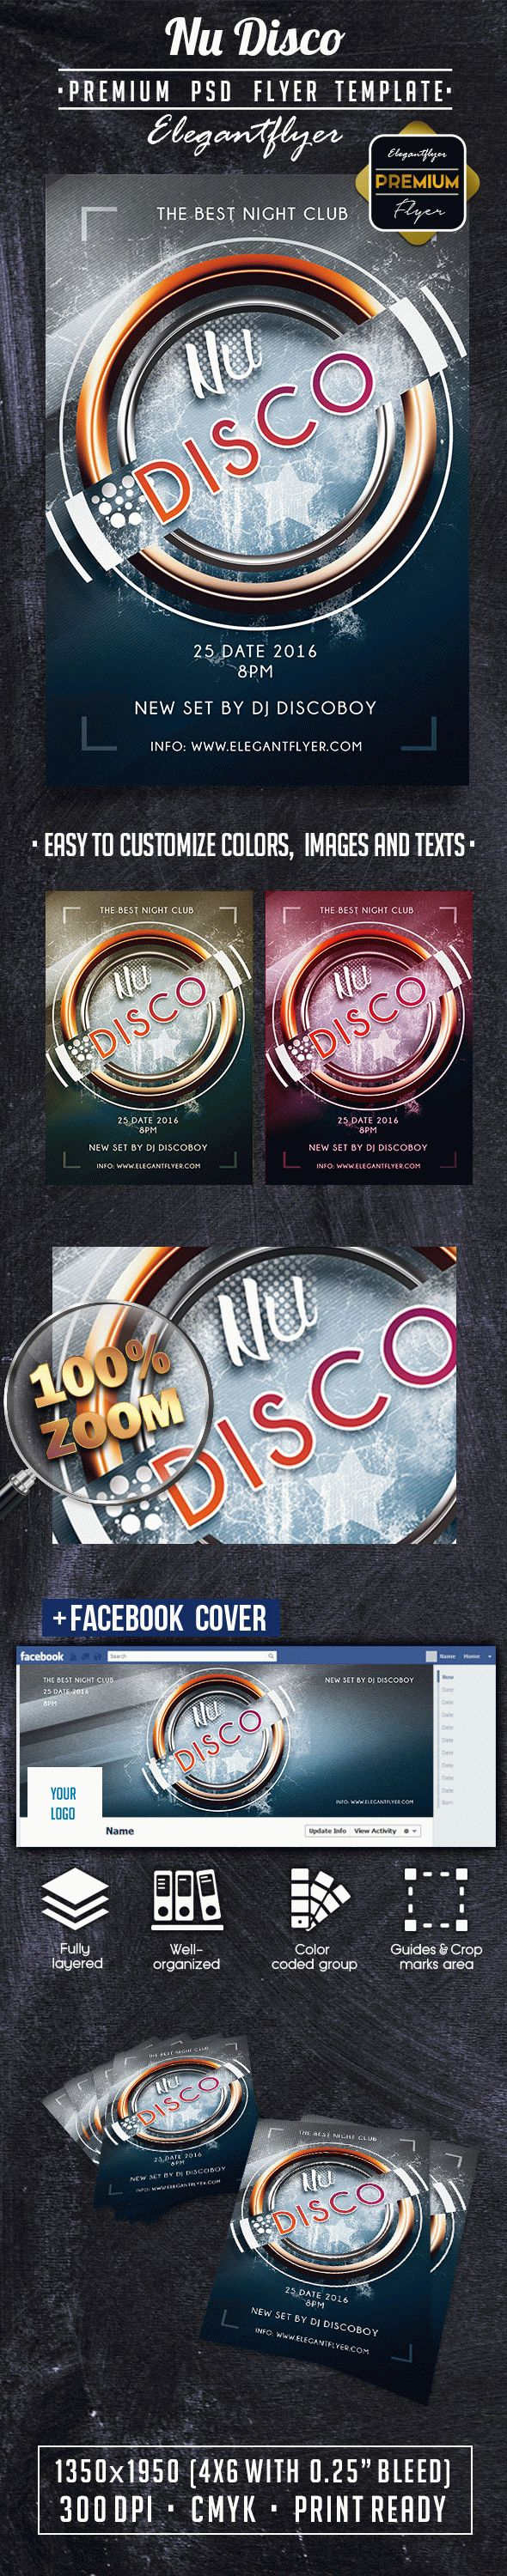 Nu Disco PREMIUM Flyer PSD Template + Facebook Cover